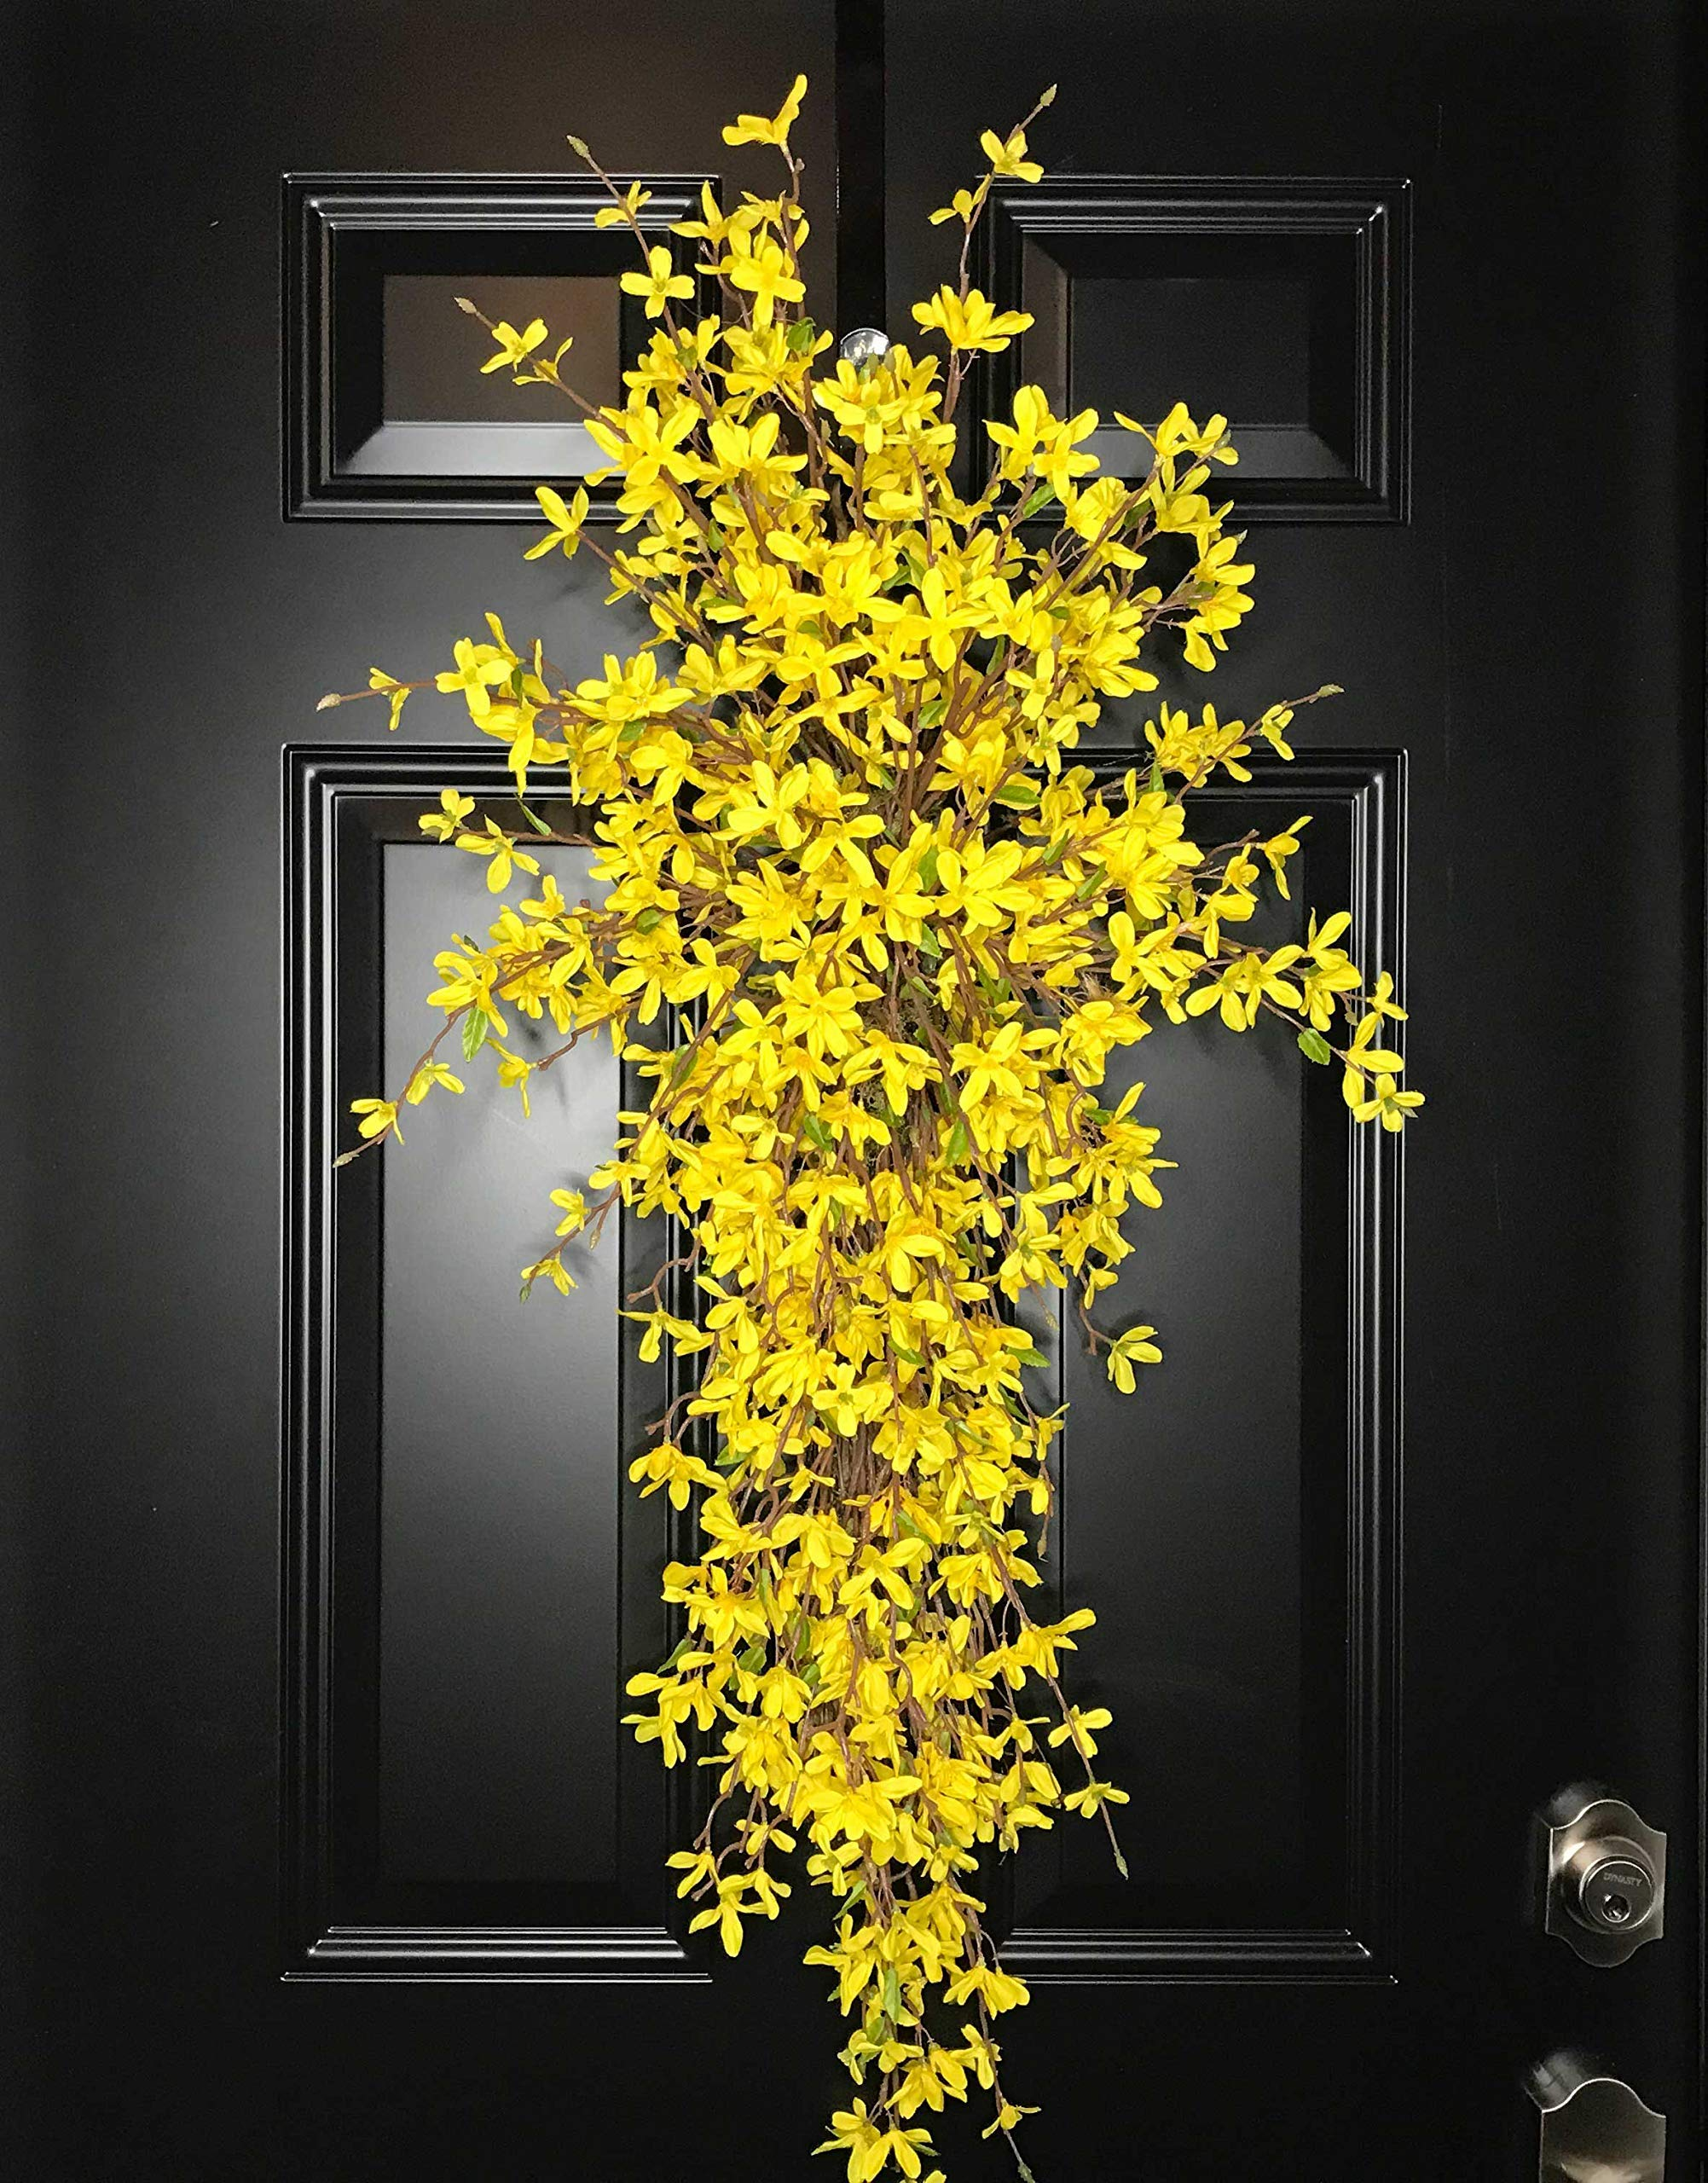 Extra Large Forsythia Floral Teardrop Swag Wreath for Front Door Porch Indoor Wall Farmhouse Decor Spring Springtime Summer Summertime Mother's Day Easter, Handmade, Yellow, 3 Sizes-42'', 36'', 30'' L by Wreath and Vine, LLC (Image #5)